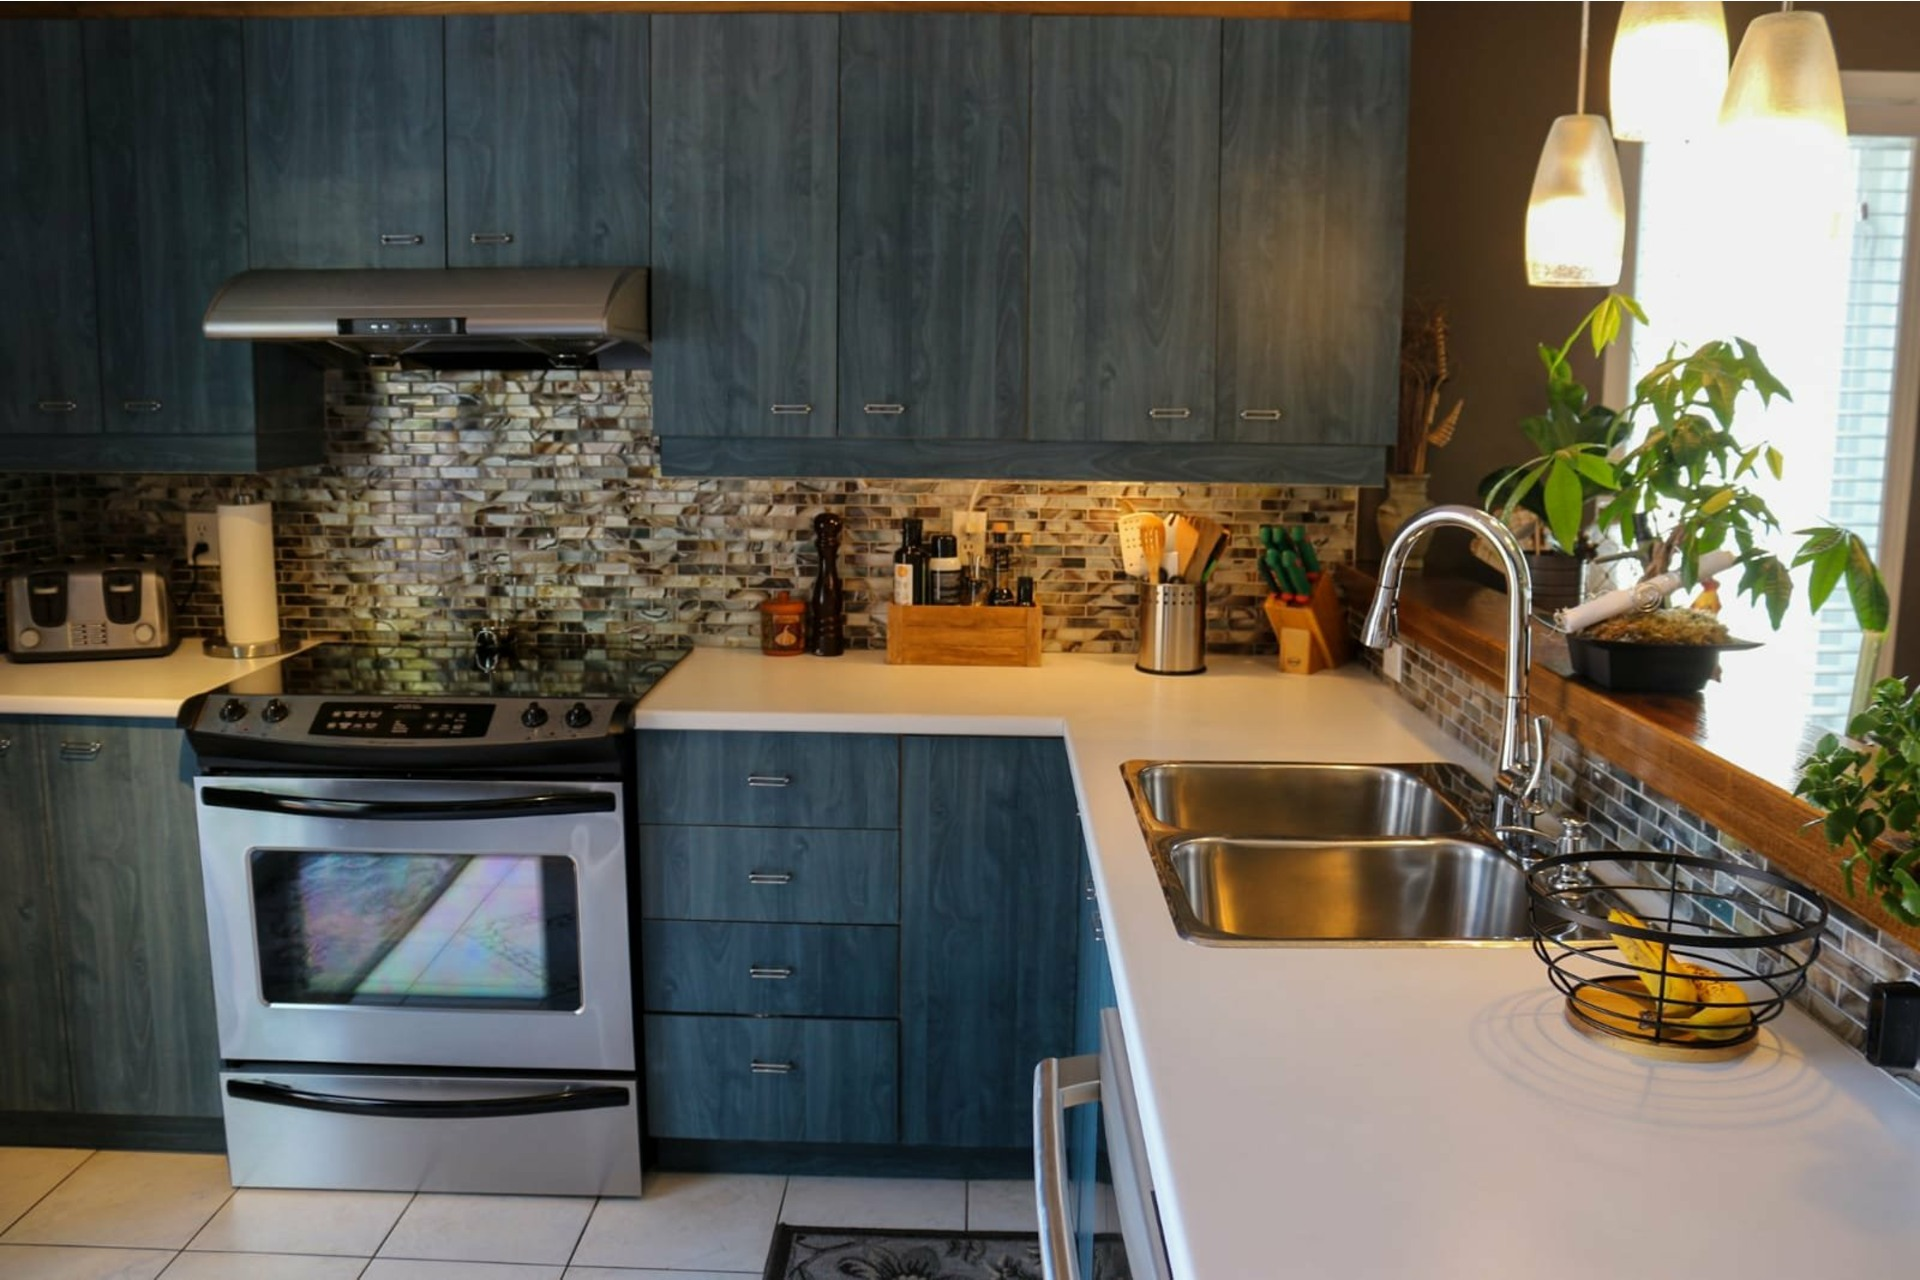 image 4 - House For sale Vaudreuil-Dorion - 12 rooms